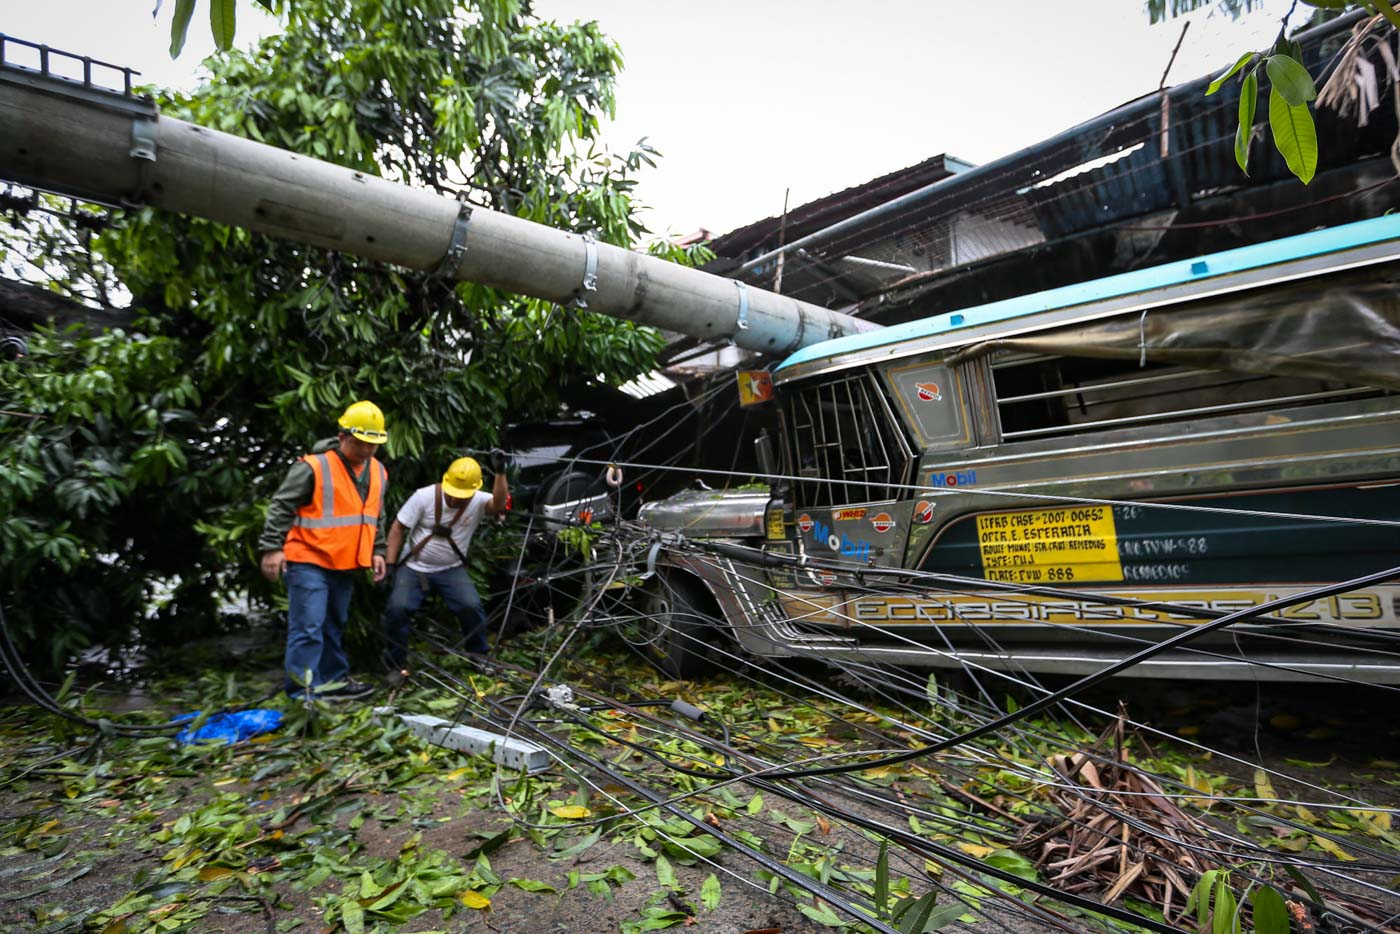 POWER OUT. An electric post hits a parked jeepney in West Riverside, San Francisco del Monte in Quezon City, after being toppled by strong winds. Photo by Maria Tan/Rappler